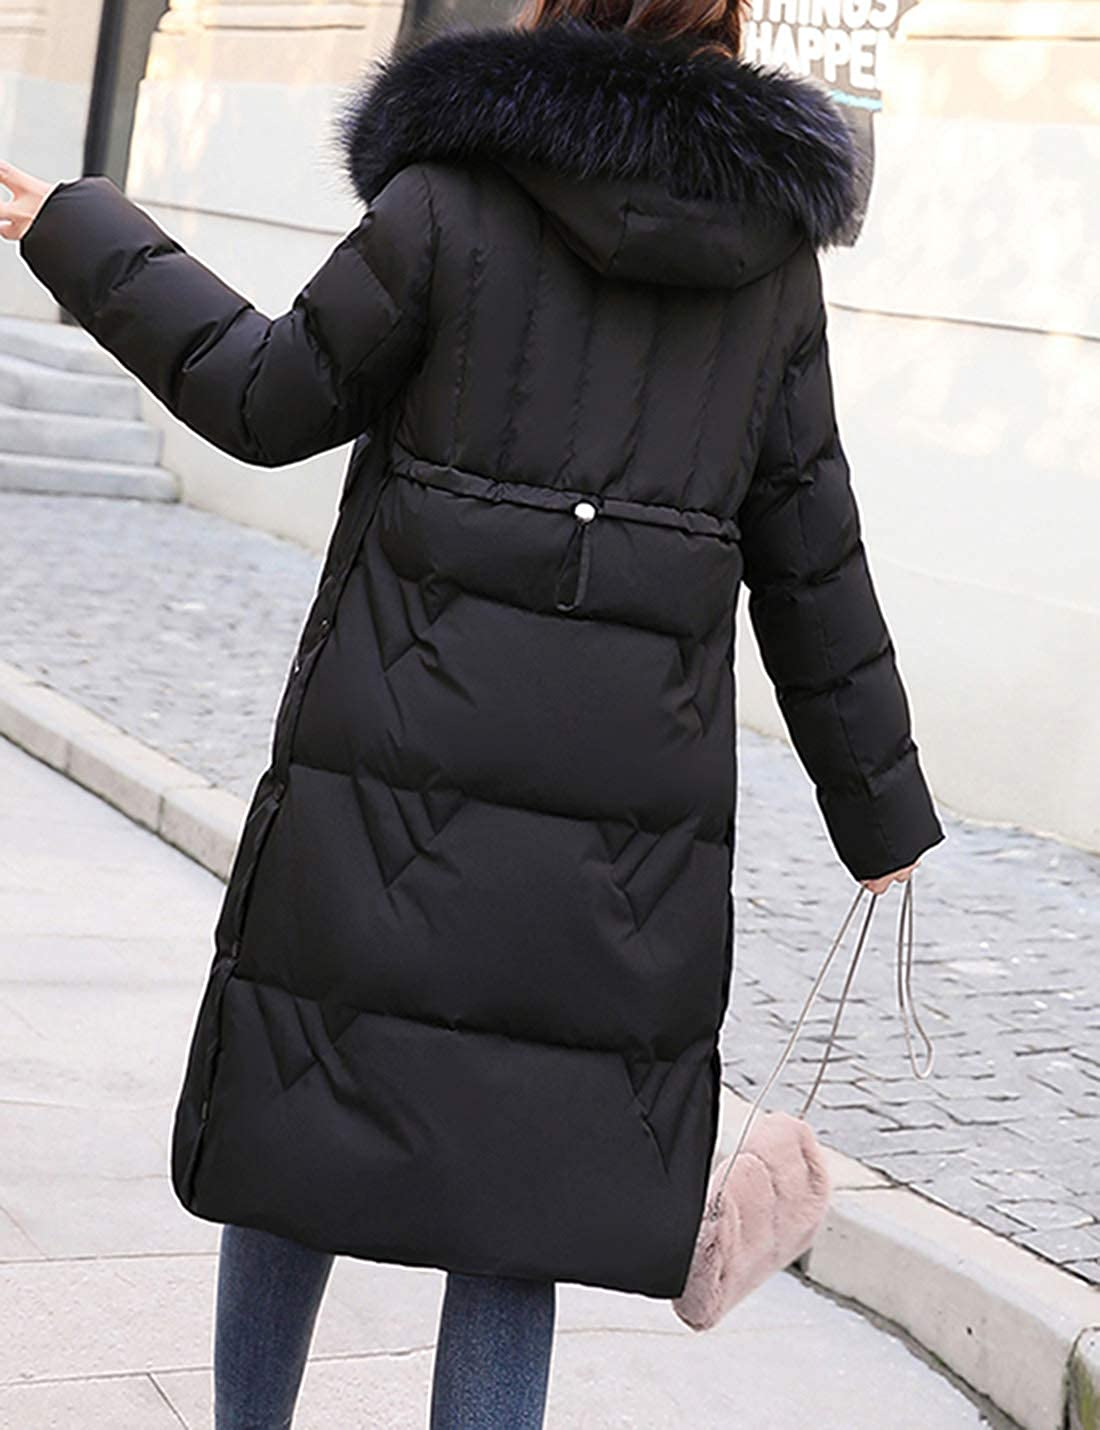 Uaneo Womens Mid Long Thicken Quilted Fur Collar Puffy Hoody Parkas Coat Outerwear(Black-M)